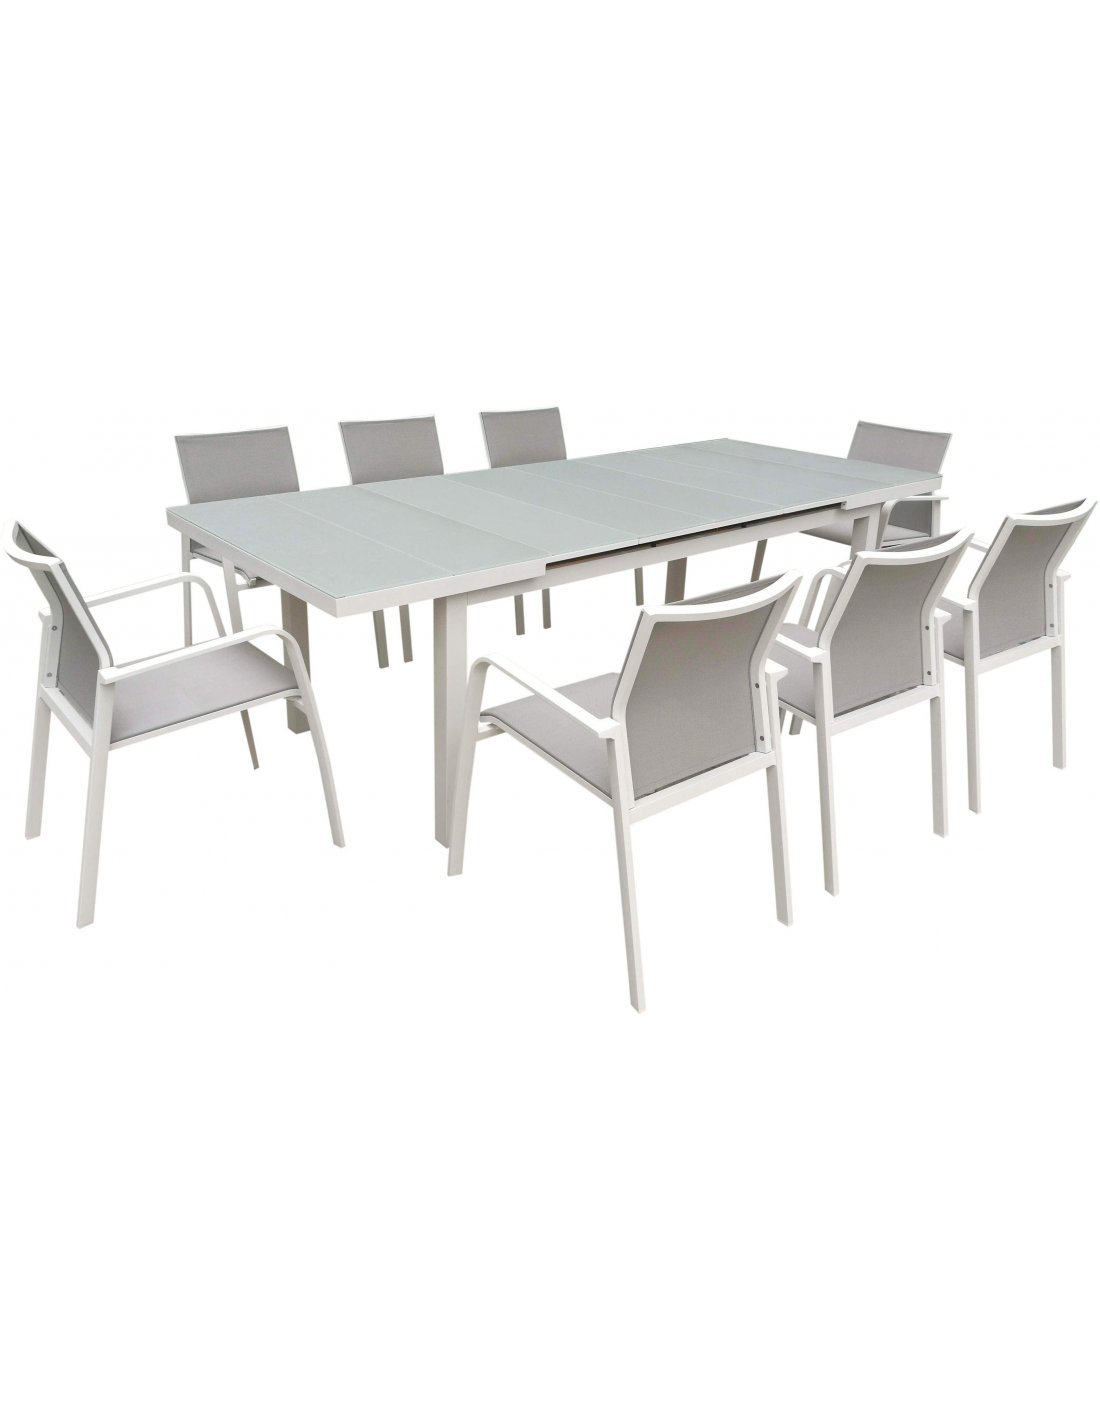 Table de jardin extensible NICE aluminium | Delorm |